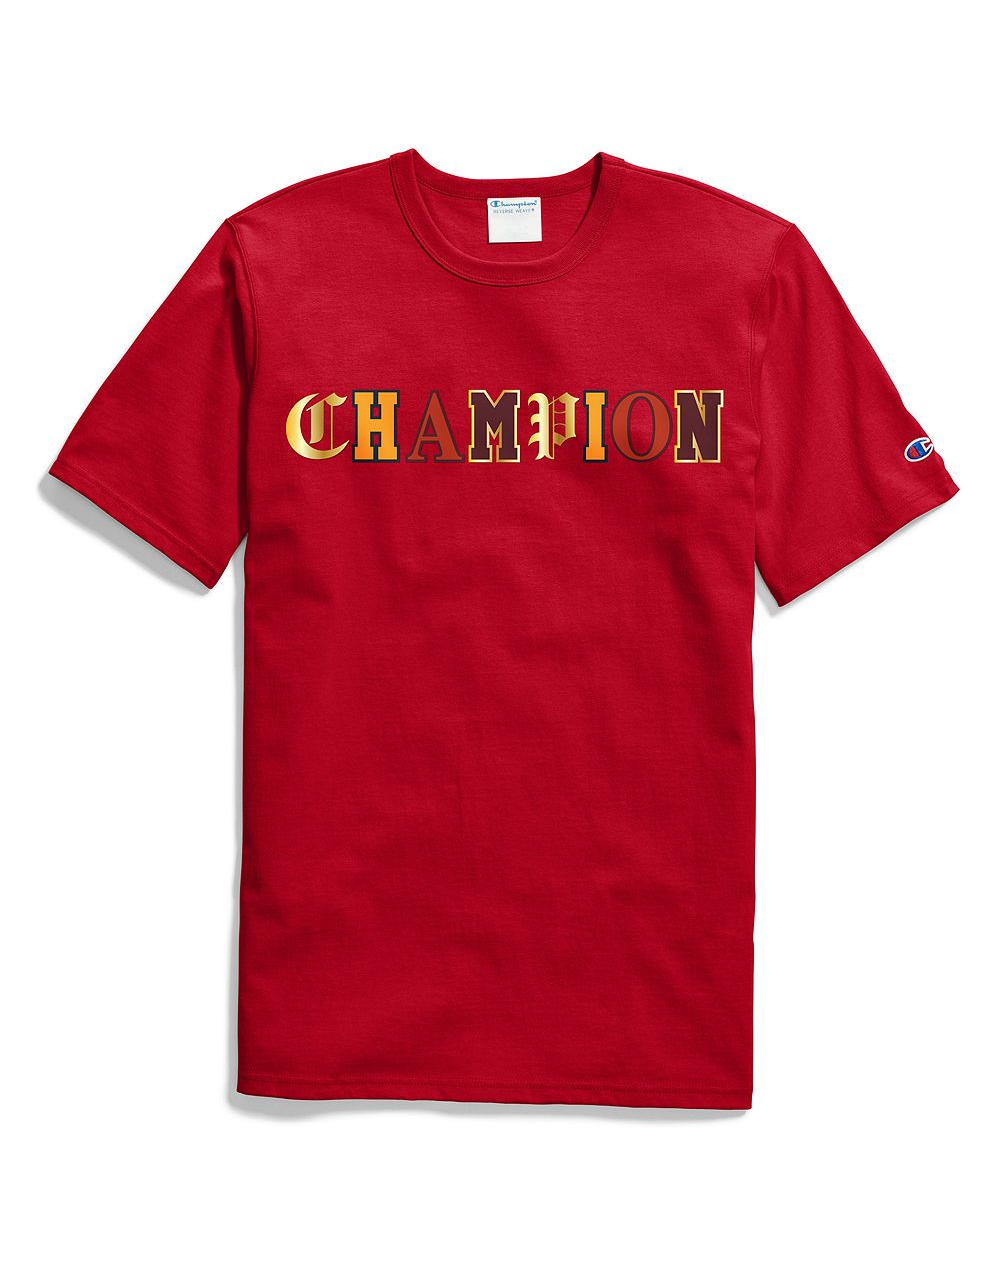 Champion LIFE Men's Heritage Tee, Red w/Old English Lettering